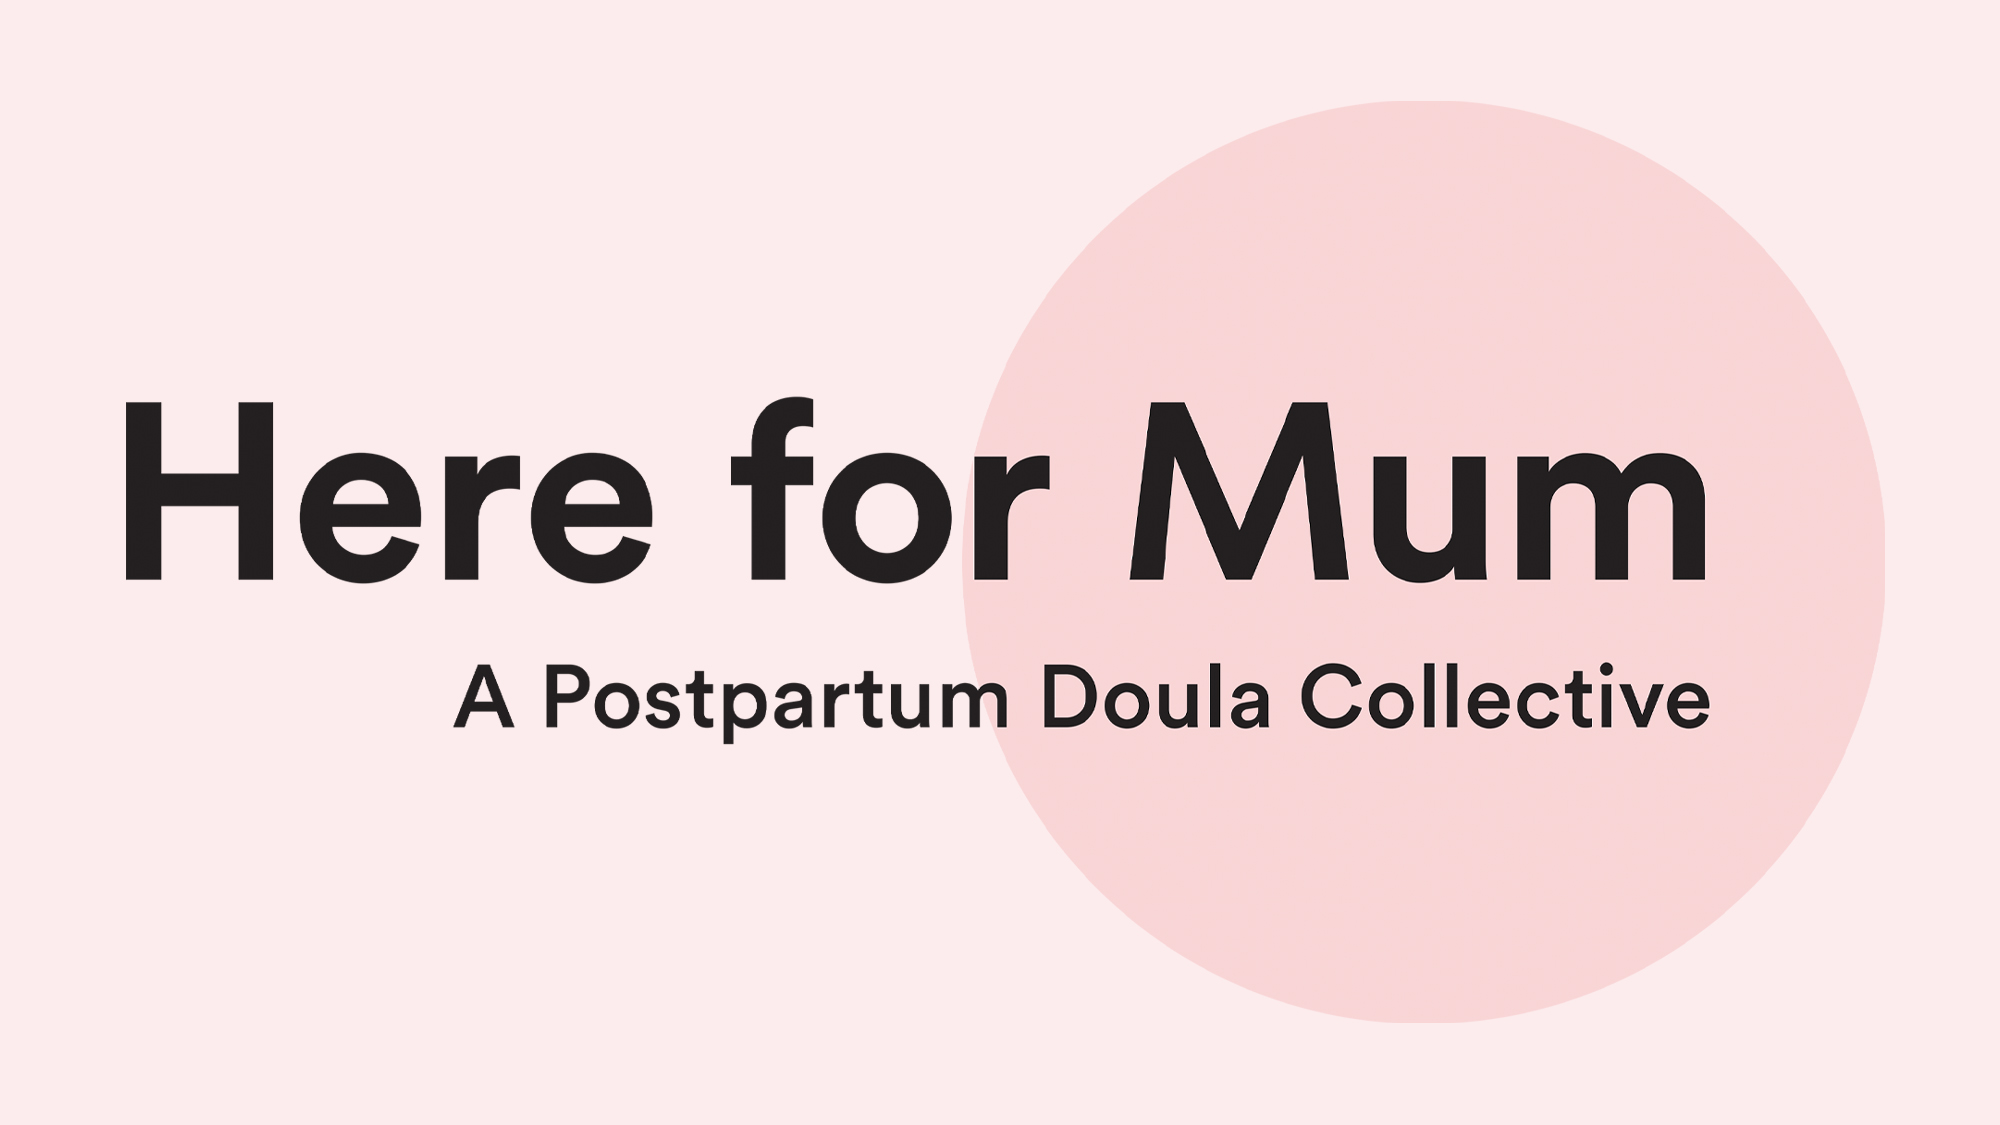 Copy of Here for Mum / Postpartum Doula Collective